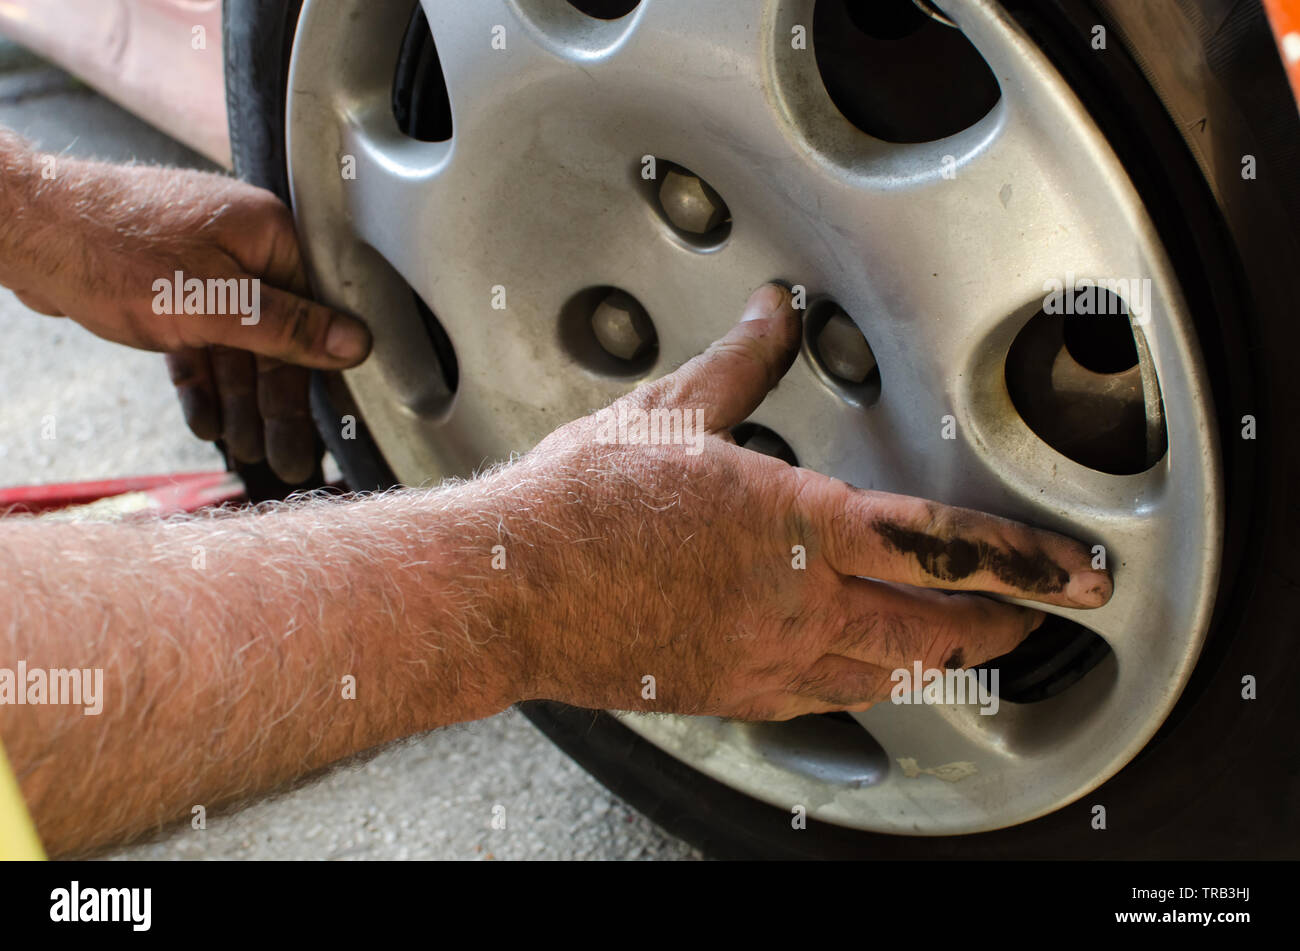 Mechanic with dirty hands replacing the plastic wheel cover after fixing tires, extreme close up, selective focus - Stock Image